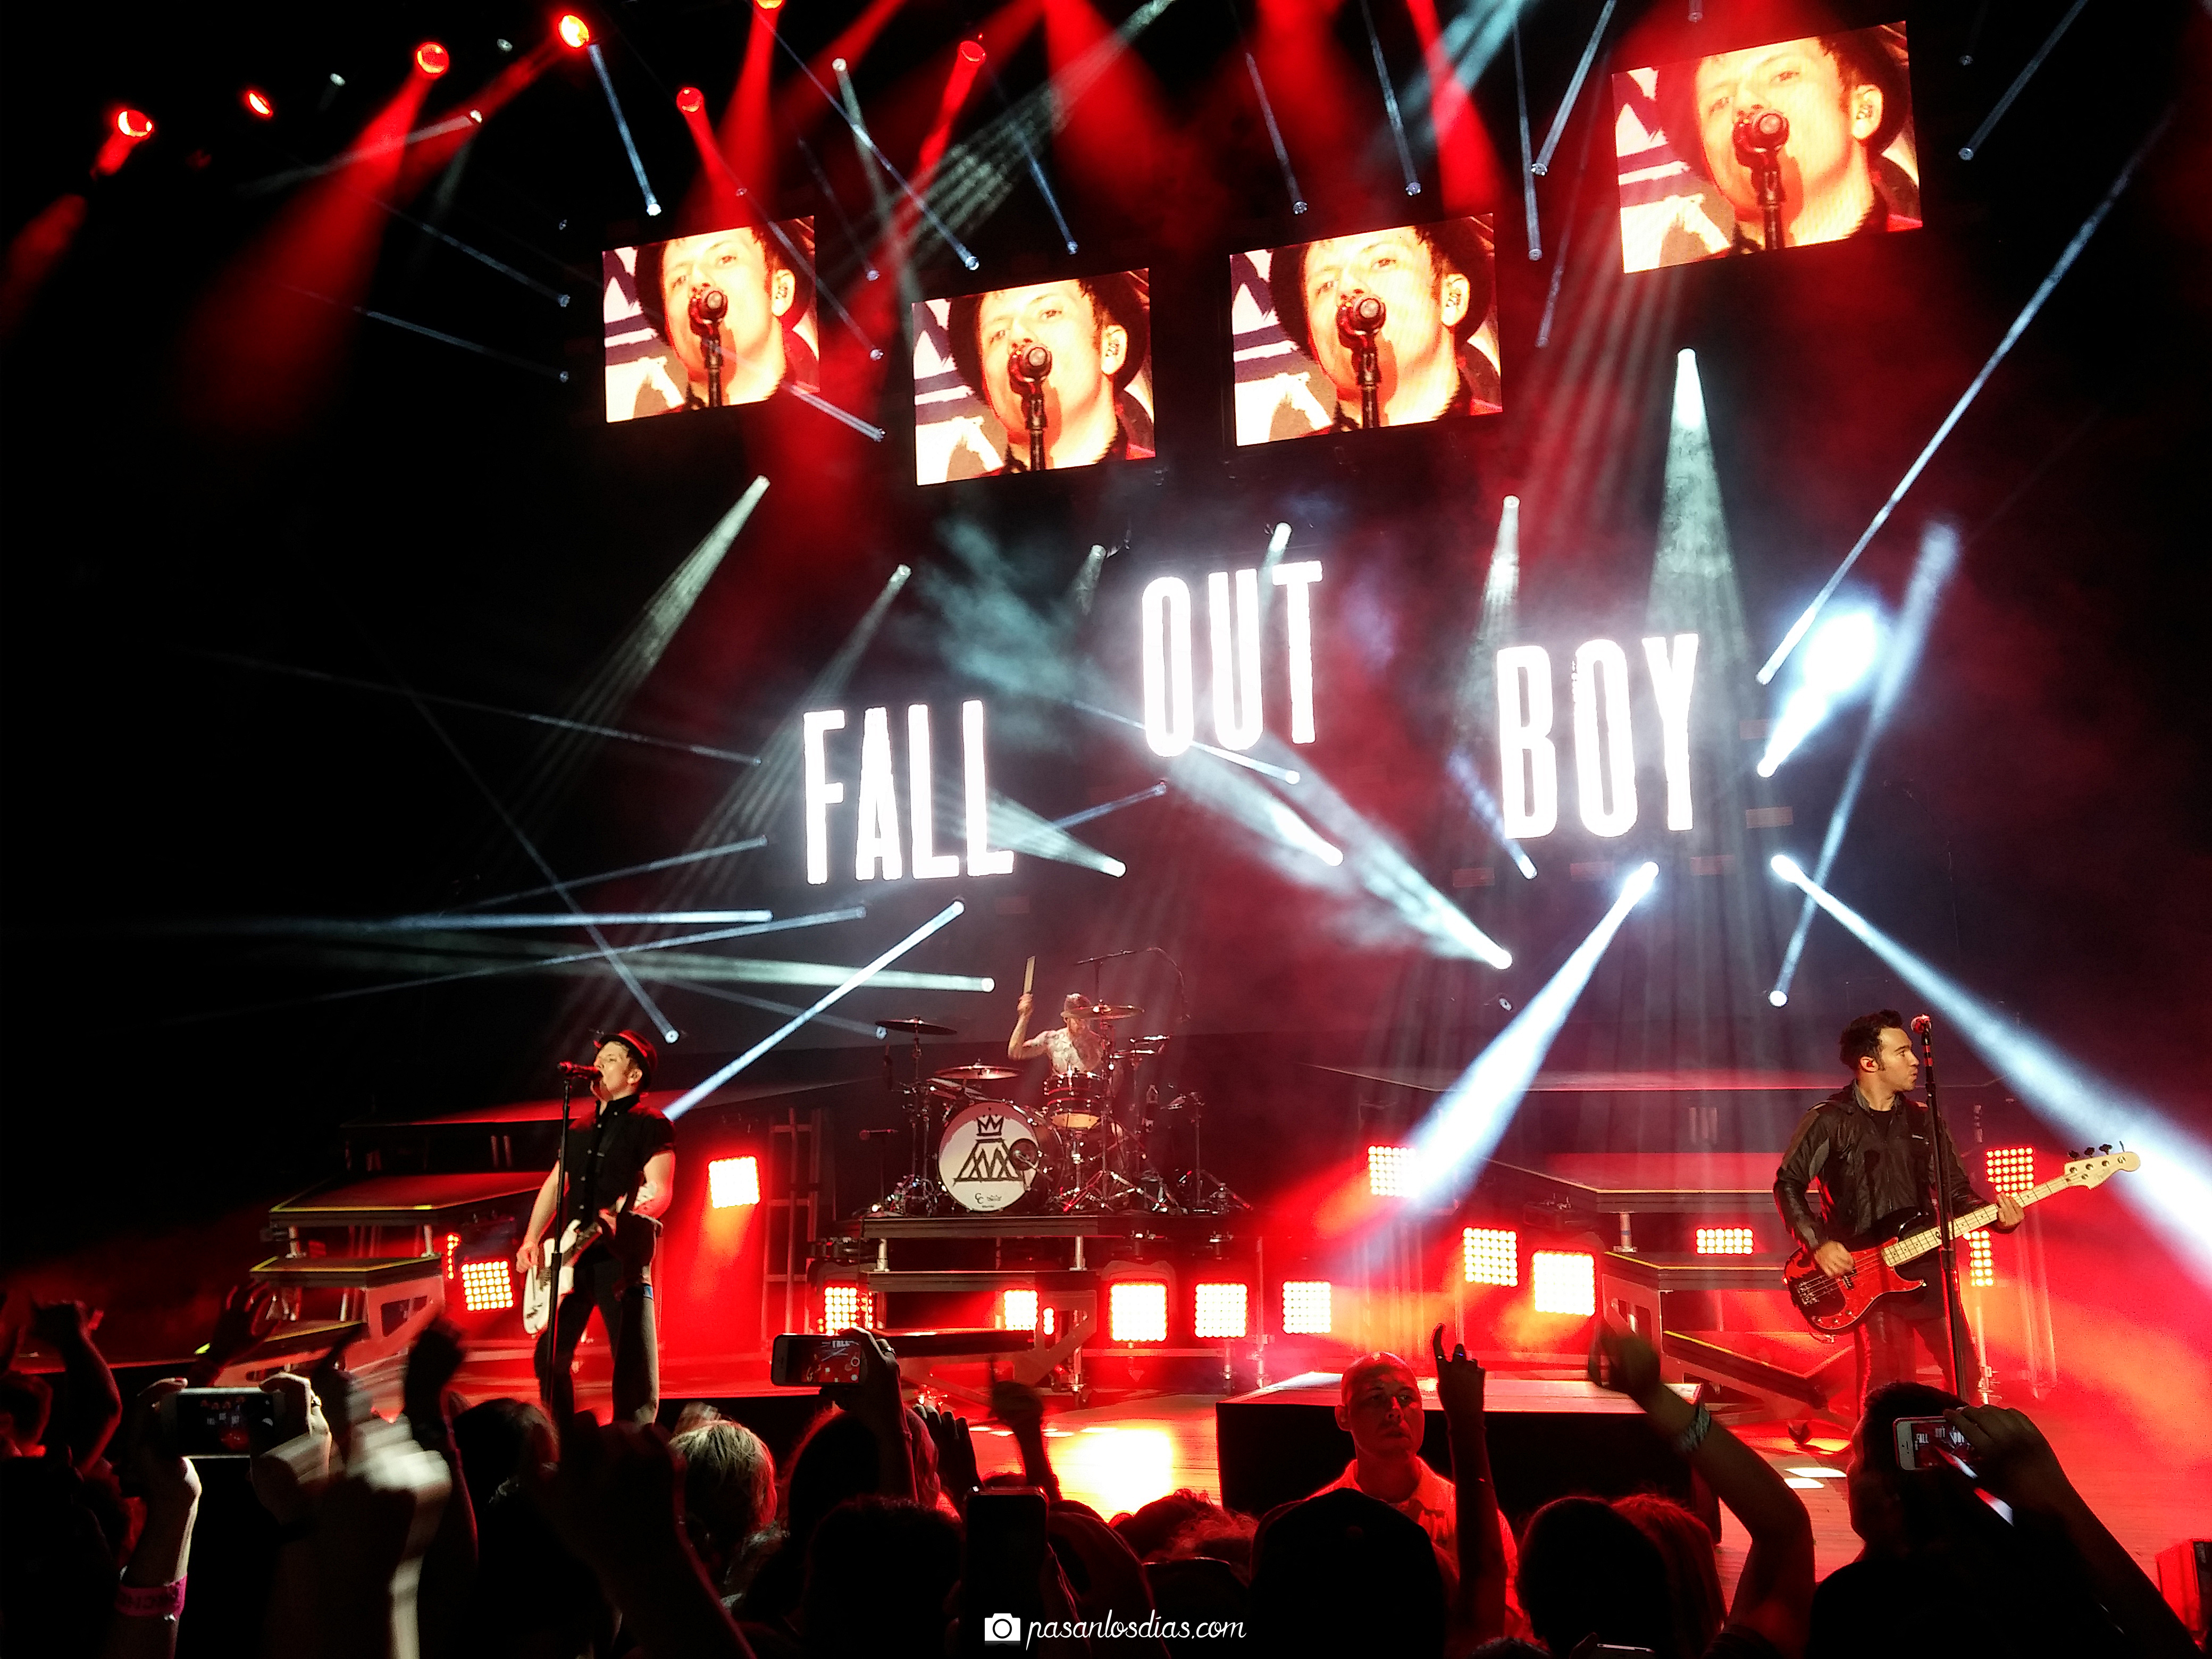 Fall Out Boy Tour Uk  Tickets